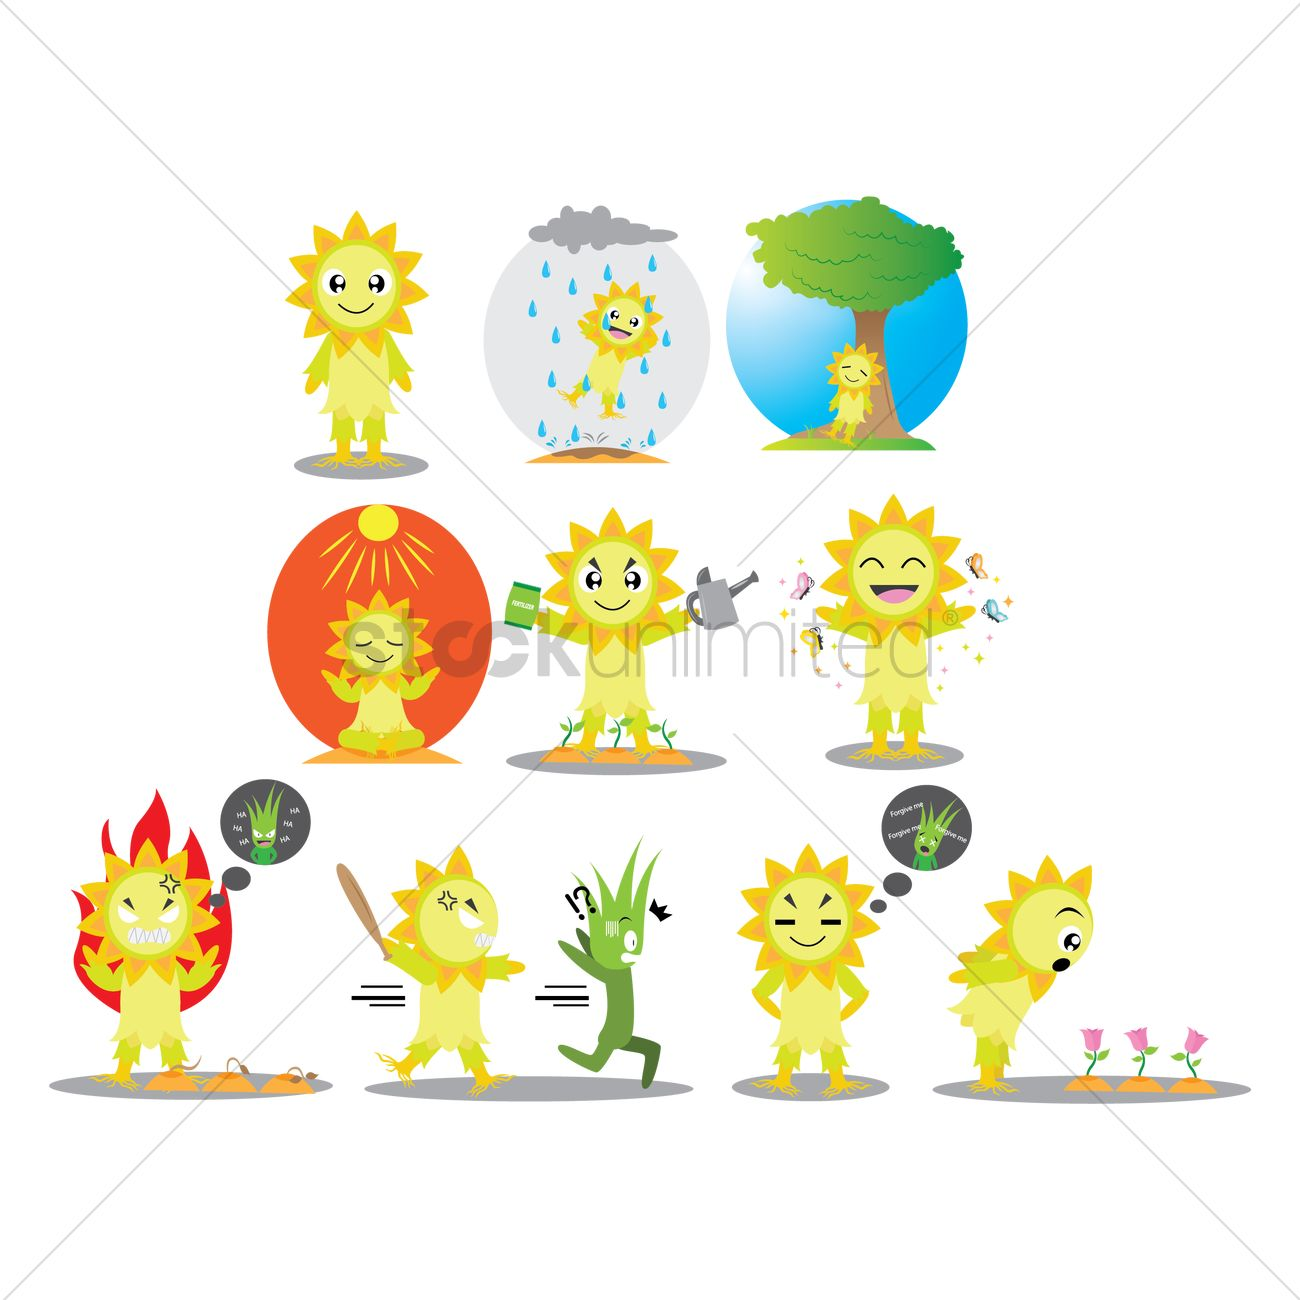 Sunflower Character With Different Actions Vector Image 1428742